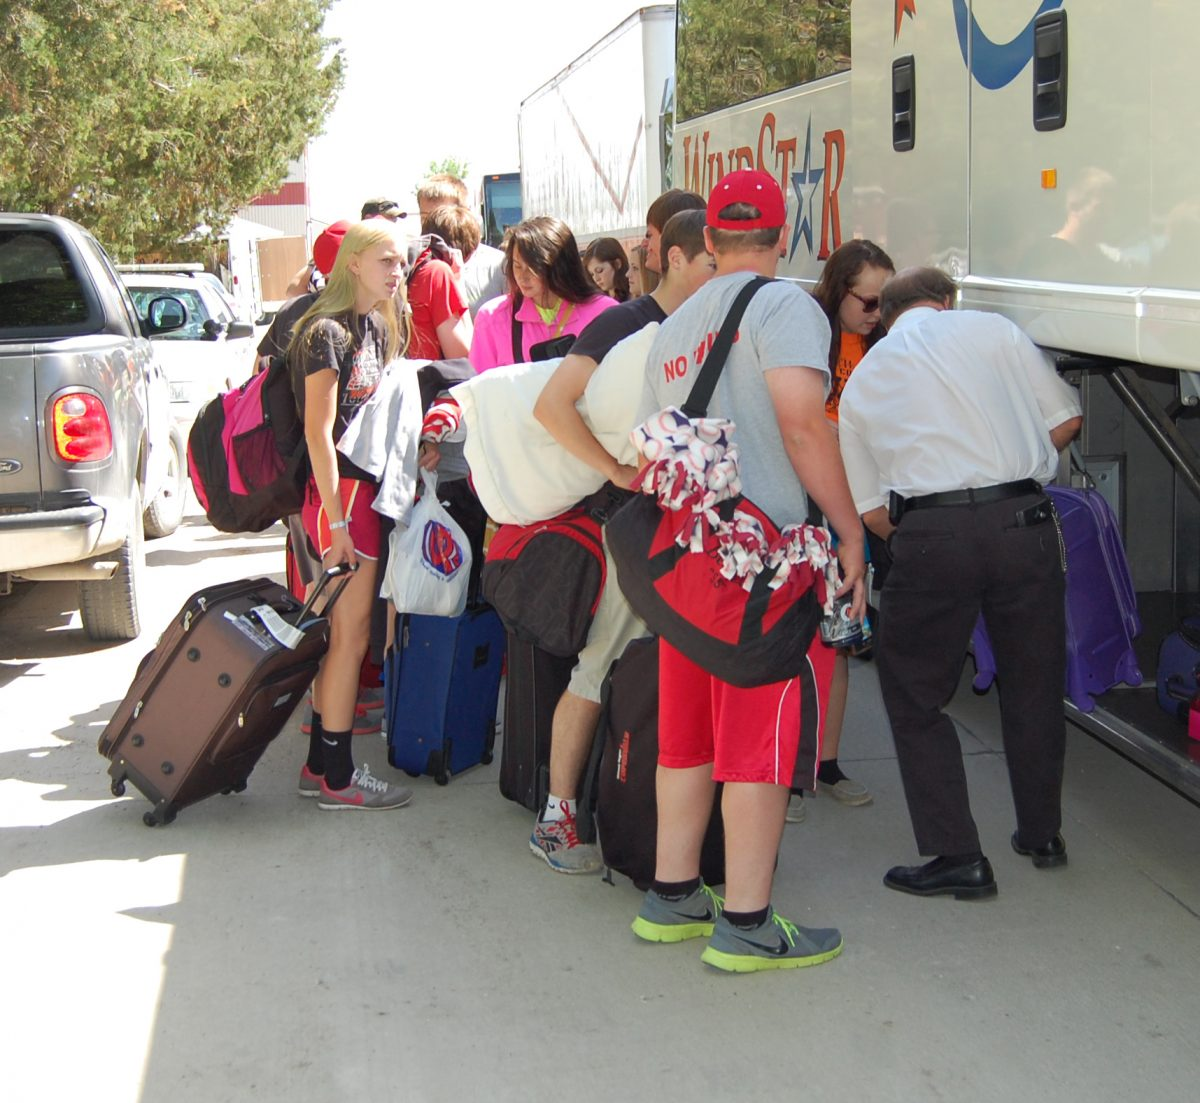 Band members loaded their suitcases on three buses and hit the road for Washington DC.